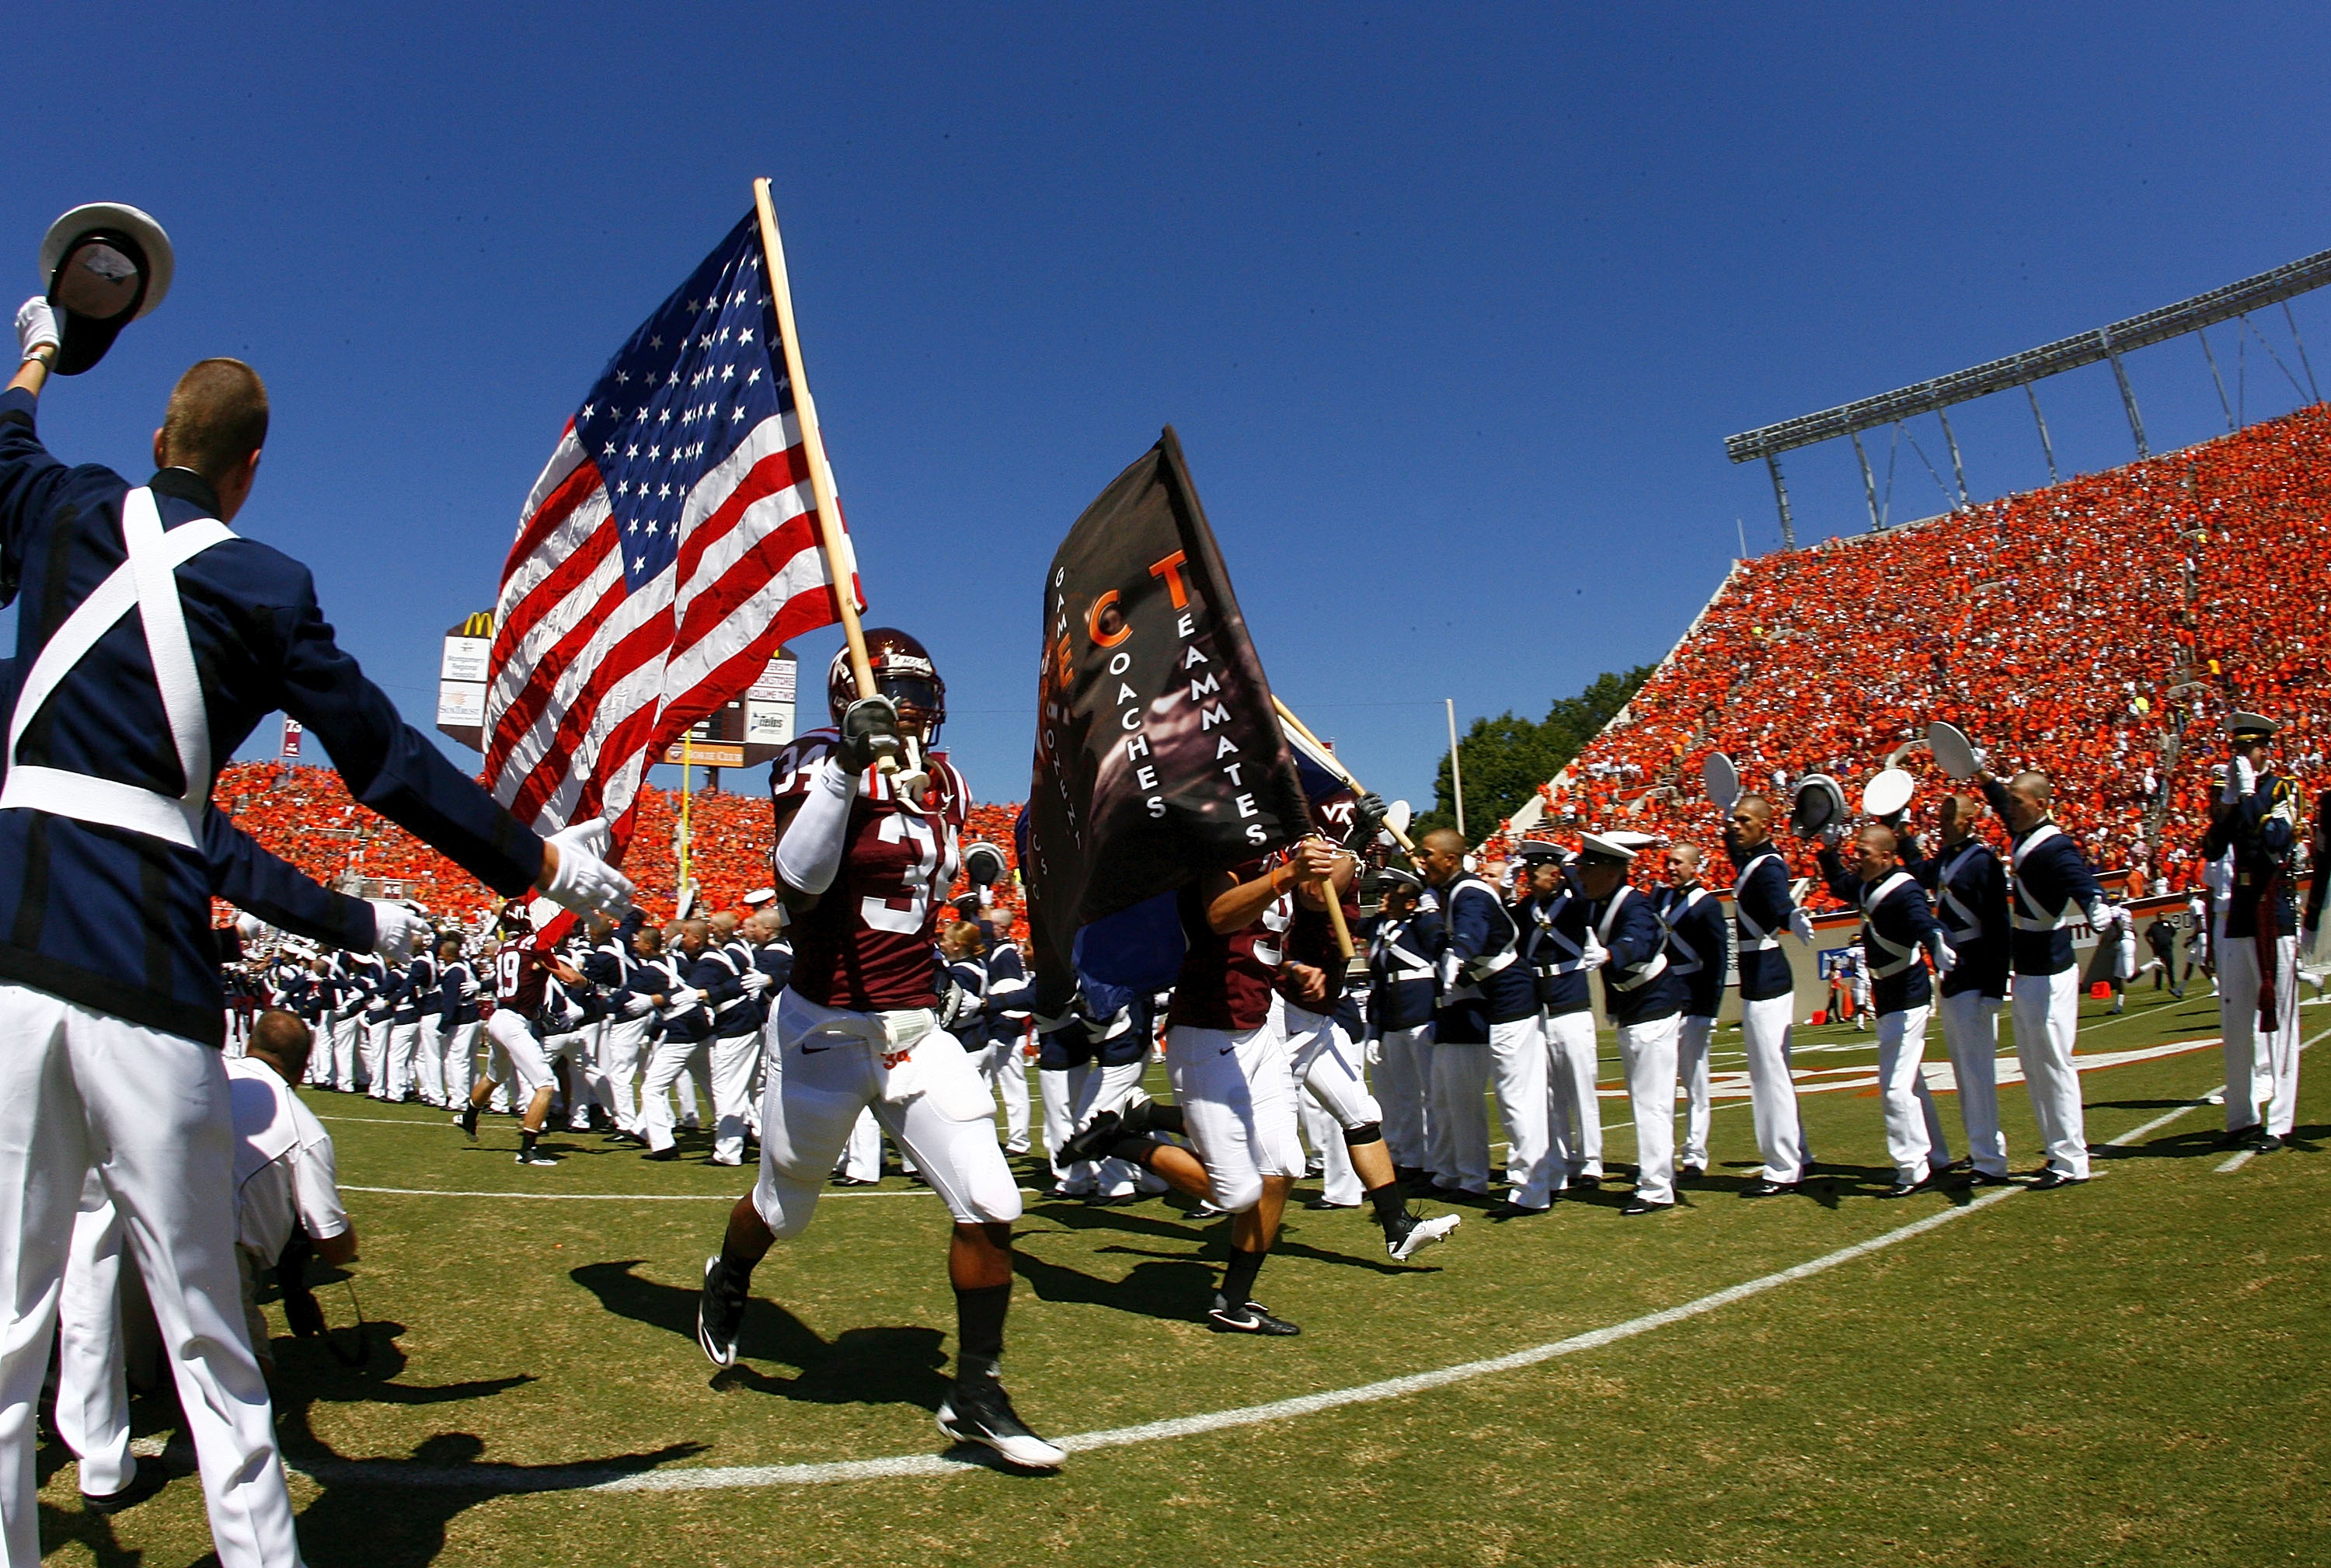 BLACKSBURG, VA - SEPTEMBER 18: Virginia Tech Hokies players take the field prior to the Hokies game against the East Carolina Pirates at Lane Stadium on September 18, 2010 in Blacksburg, Virginia.  (Photo by Geoff Burke/Getty Images)